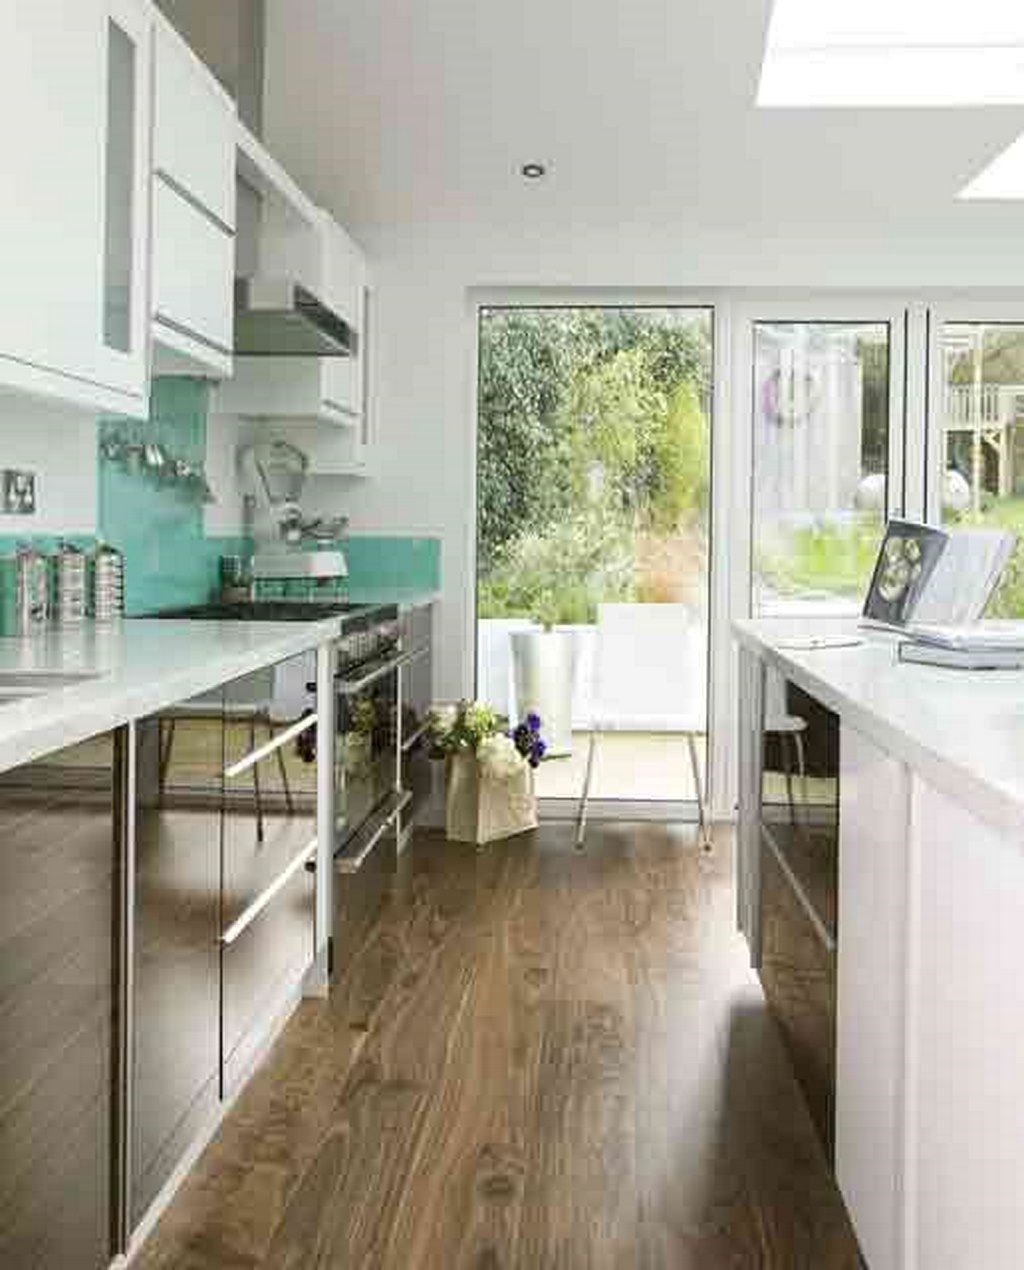 teal remodeling a galley kitchen - google search | dream home